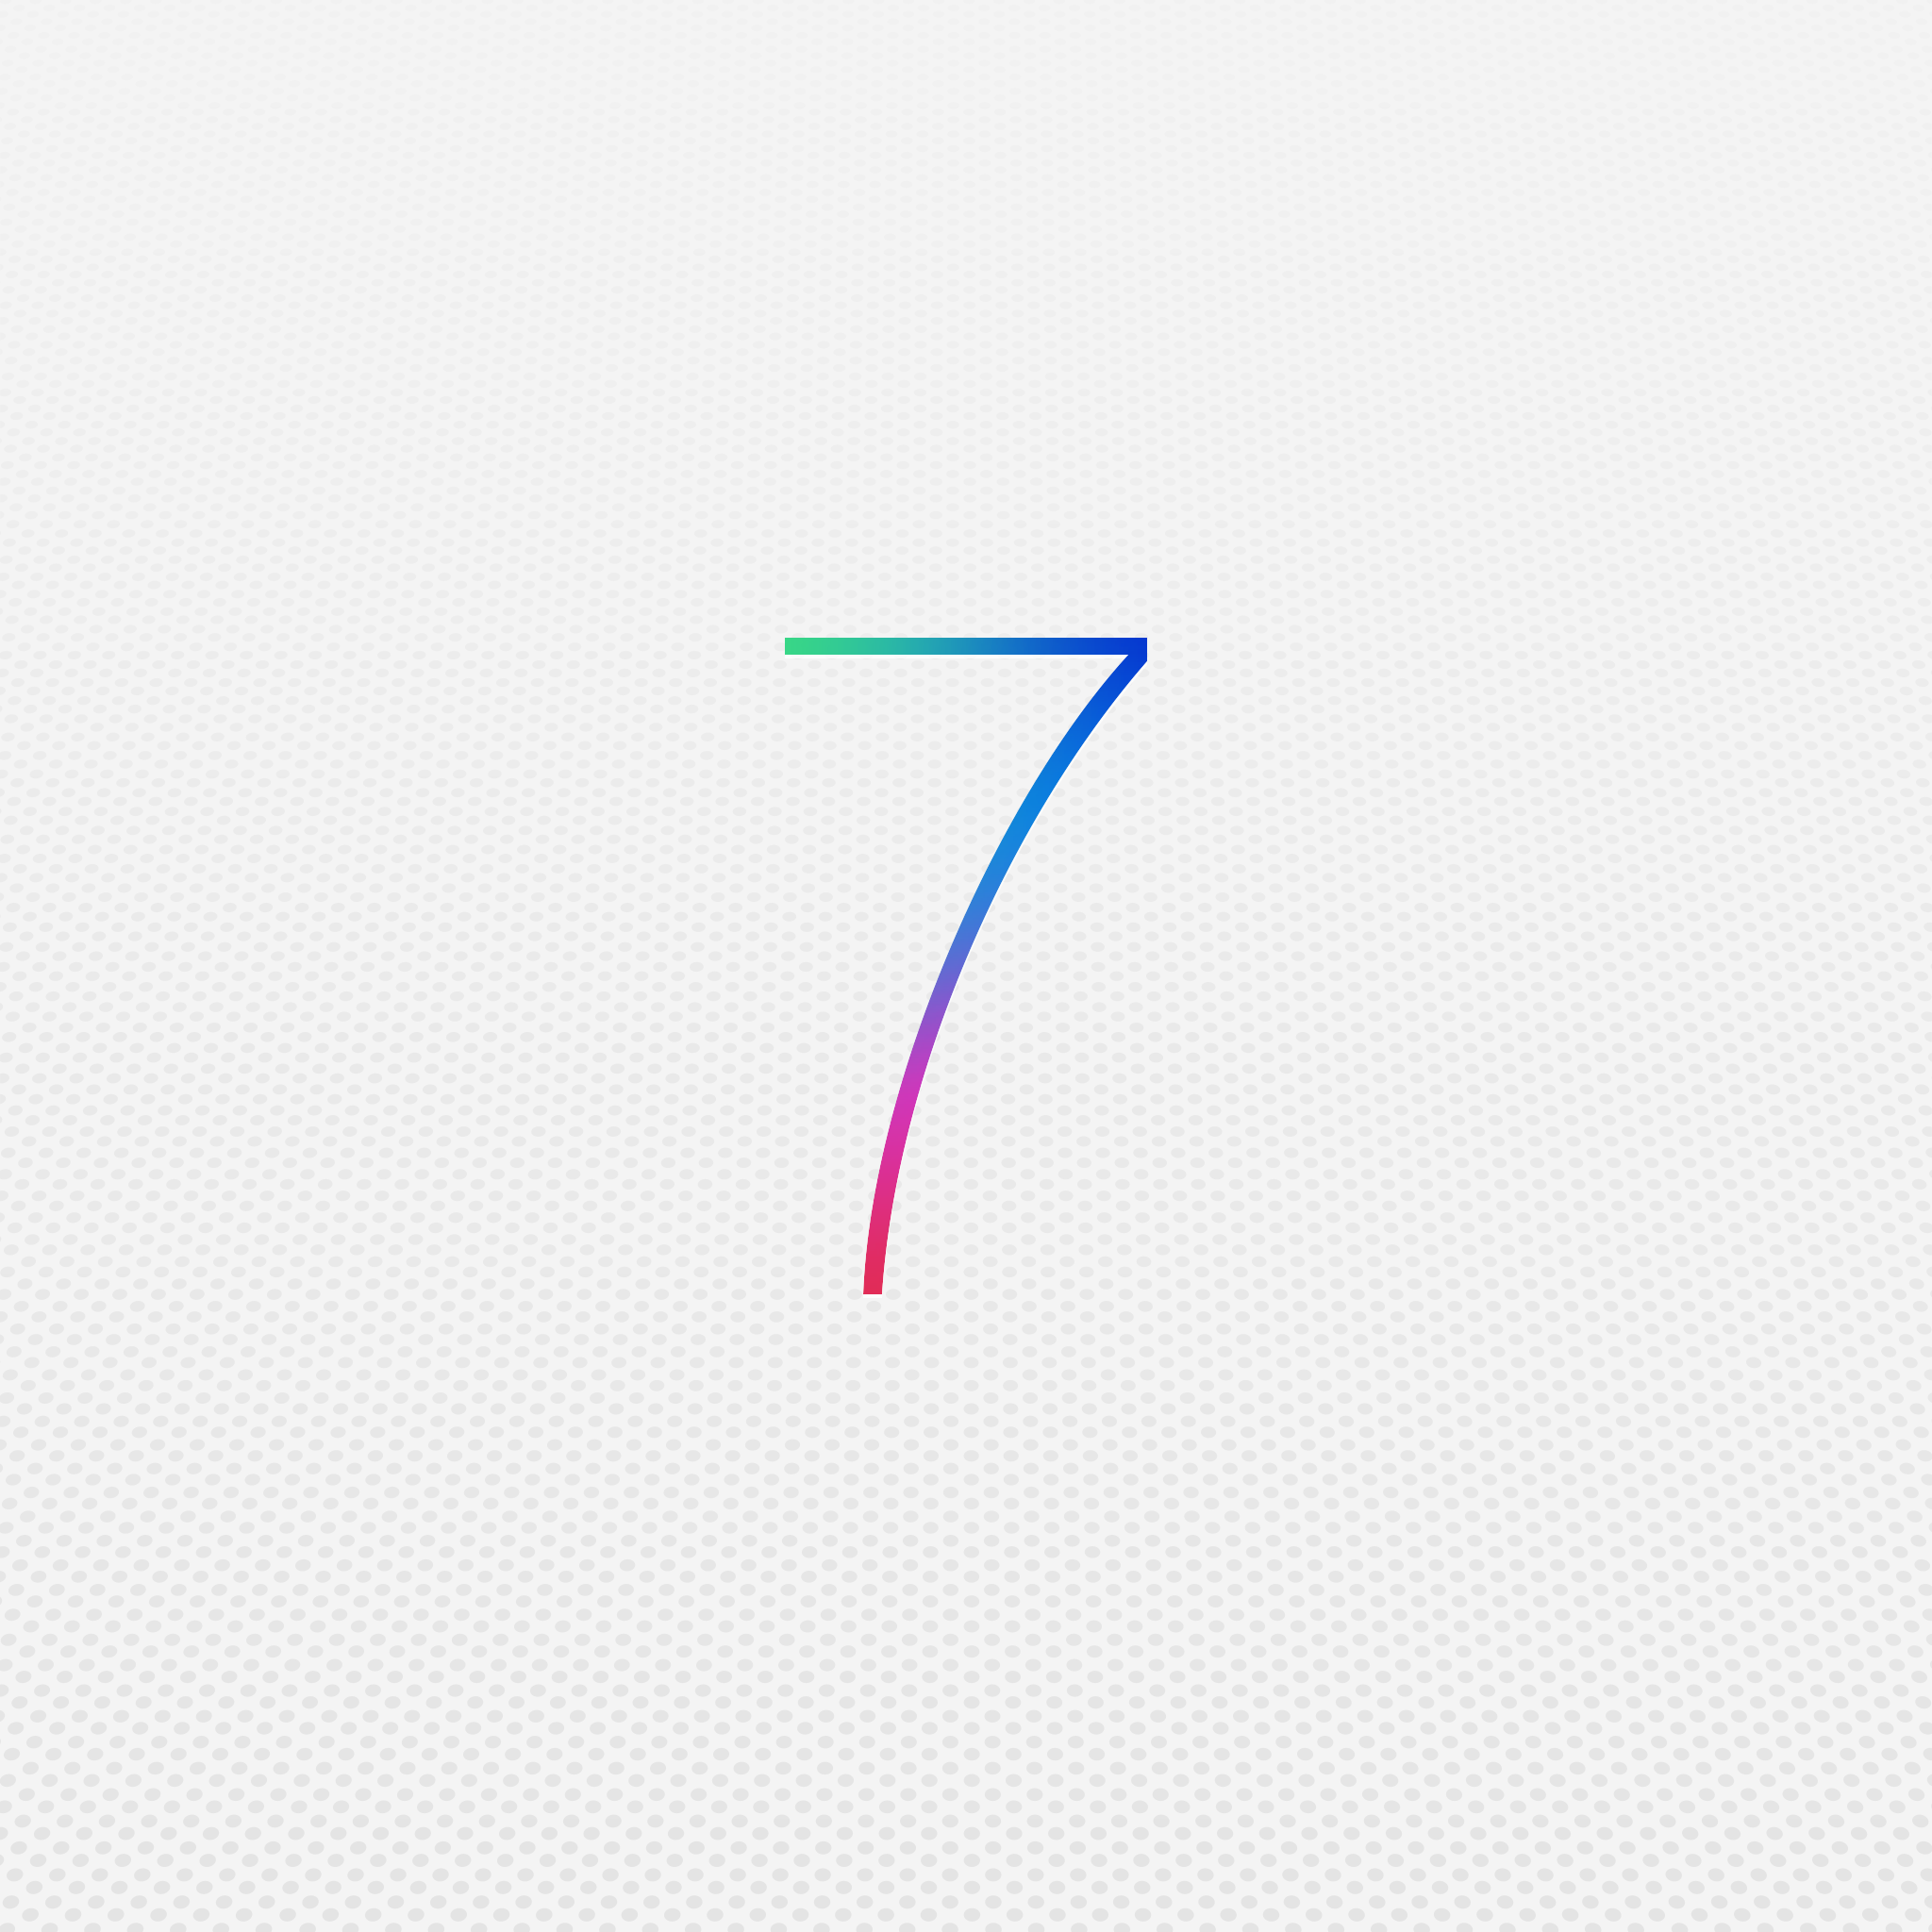 iOS7 GUI: Fantastic set with more than a thousand elements